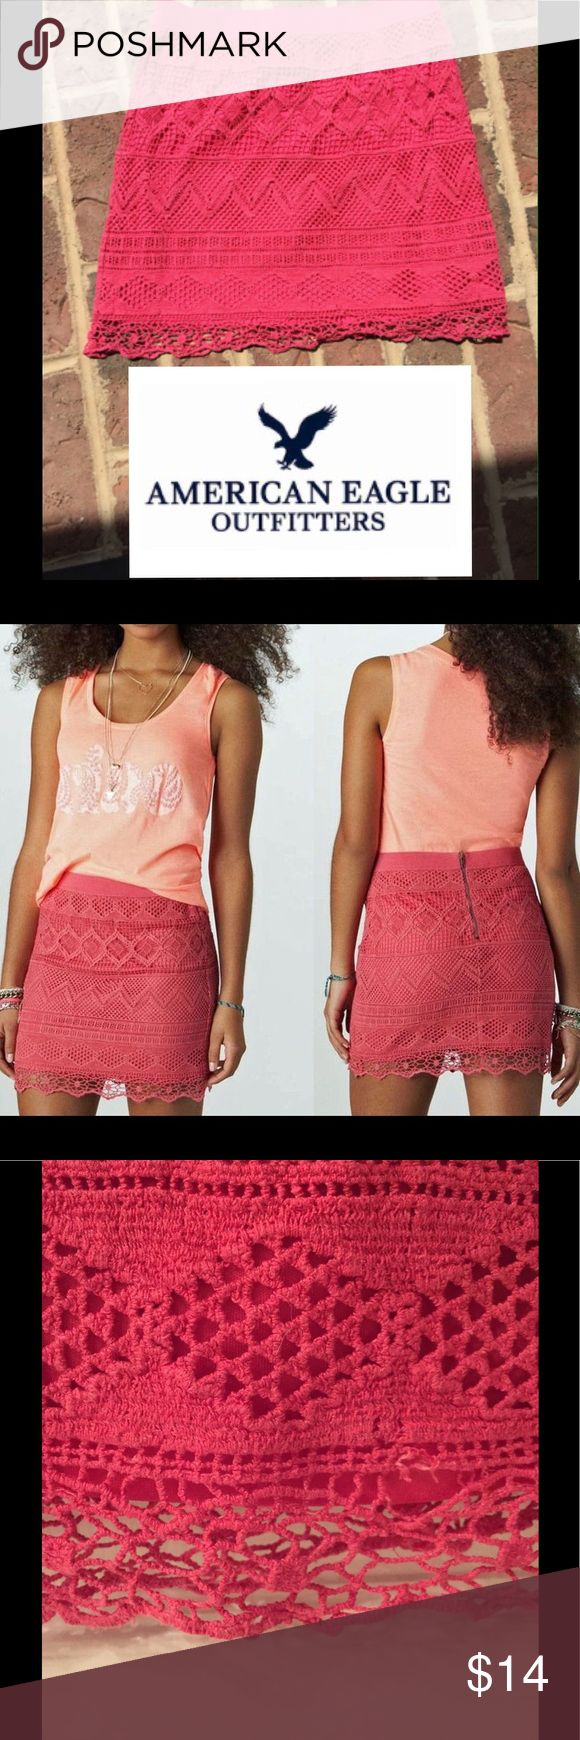 """American Eagle pink lined lace skirt American Eagle pink lined lace skirt. Back zipper. 100% cotton.  Lining 100% polyester. 16"""" length American Eagle Outfitters Skirts"""